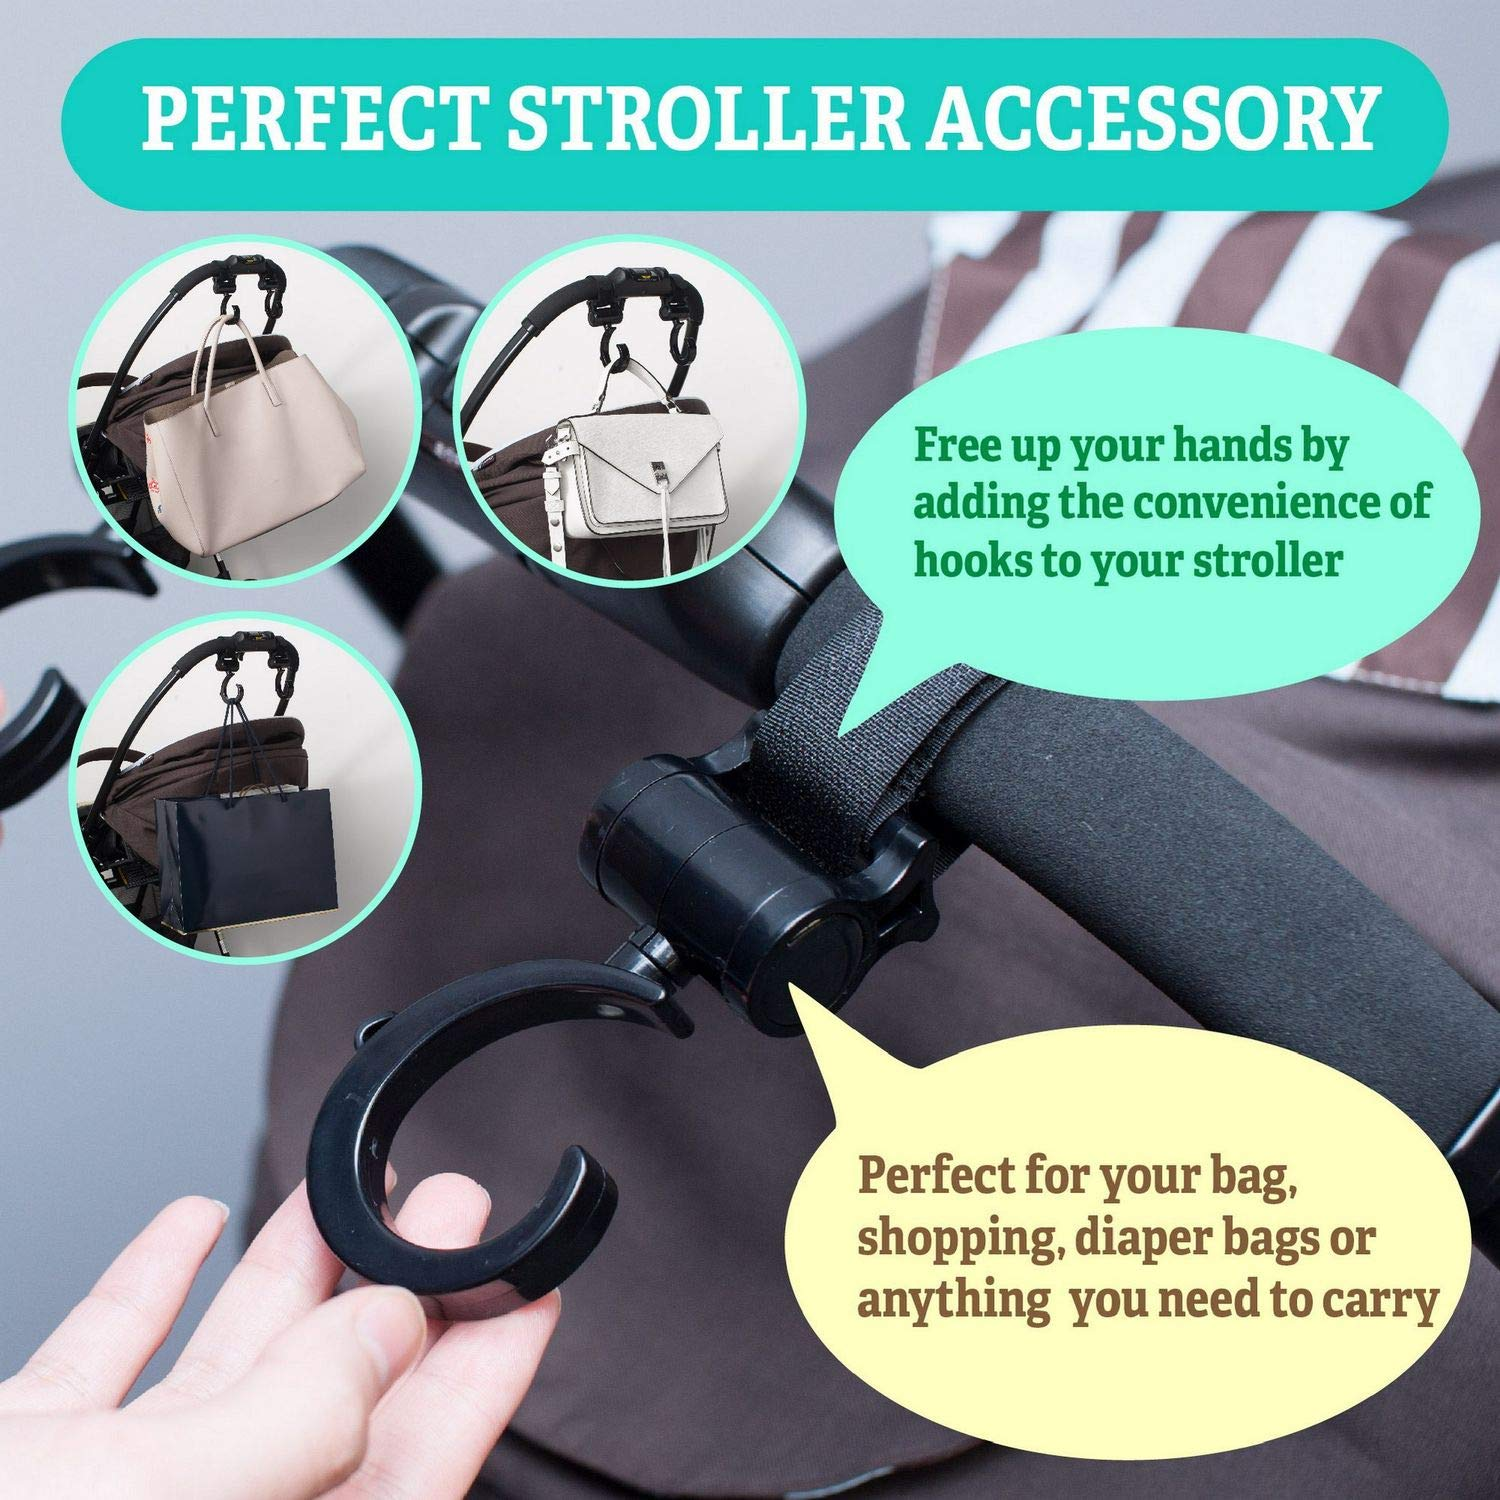 Ultra Durable Multi Purpose On Any Baby Stroller Insten 2 Pack Stroller Hook Purses 360 Degree Adjustable Angles Perfect Hanger for Diaper Bags Shopping Bags Baby Stroller Hooks Clothing